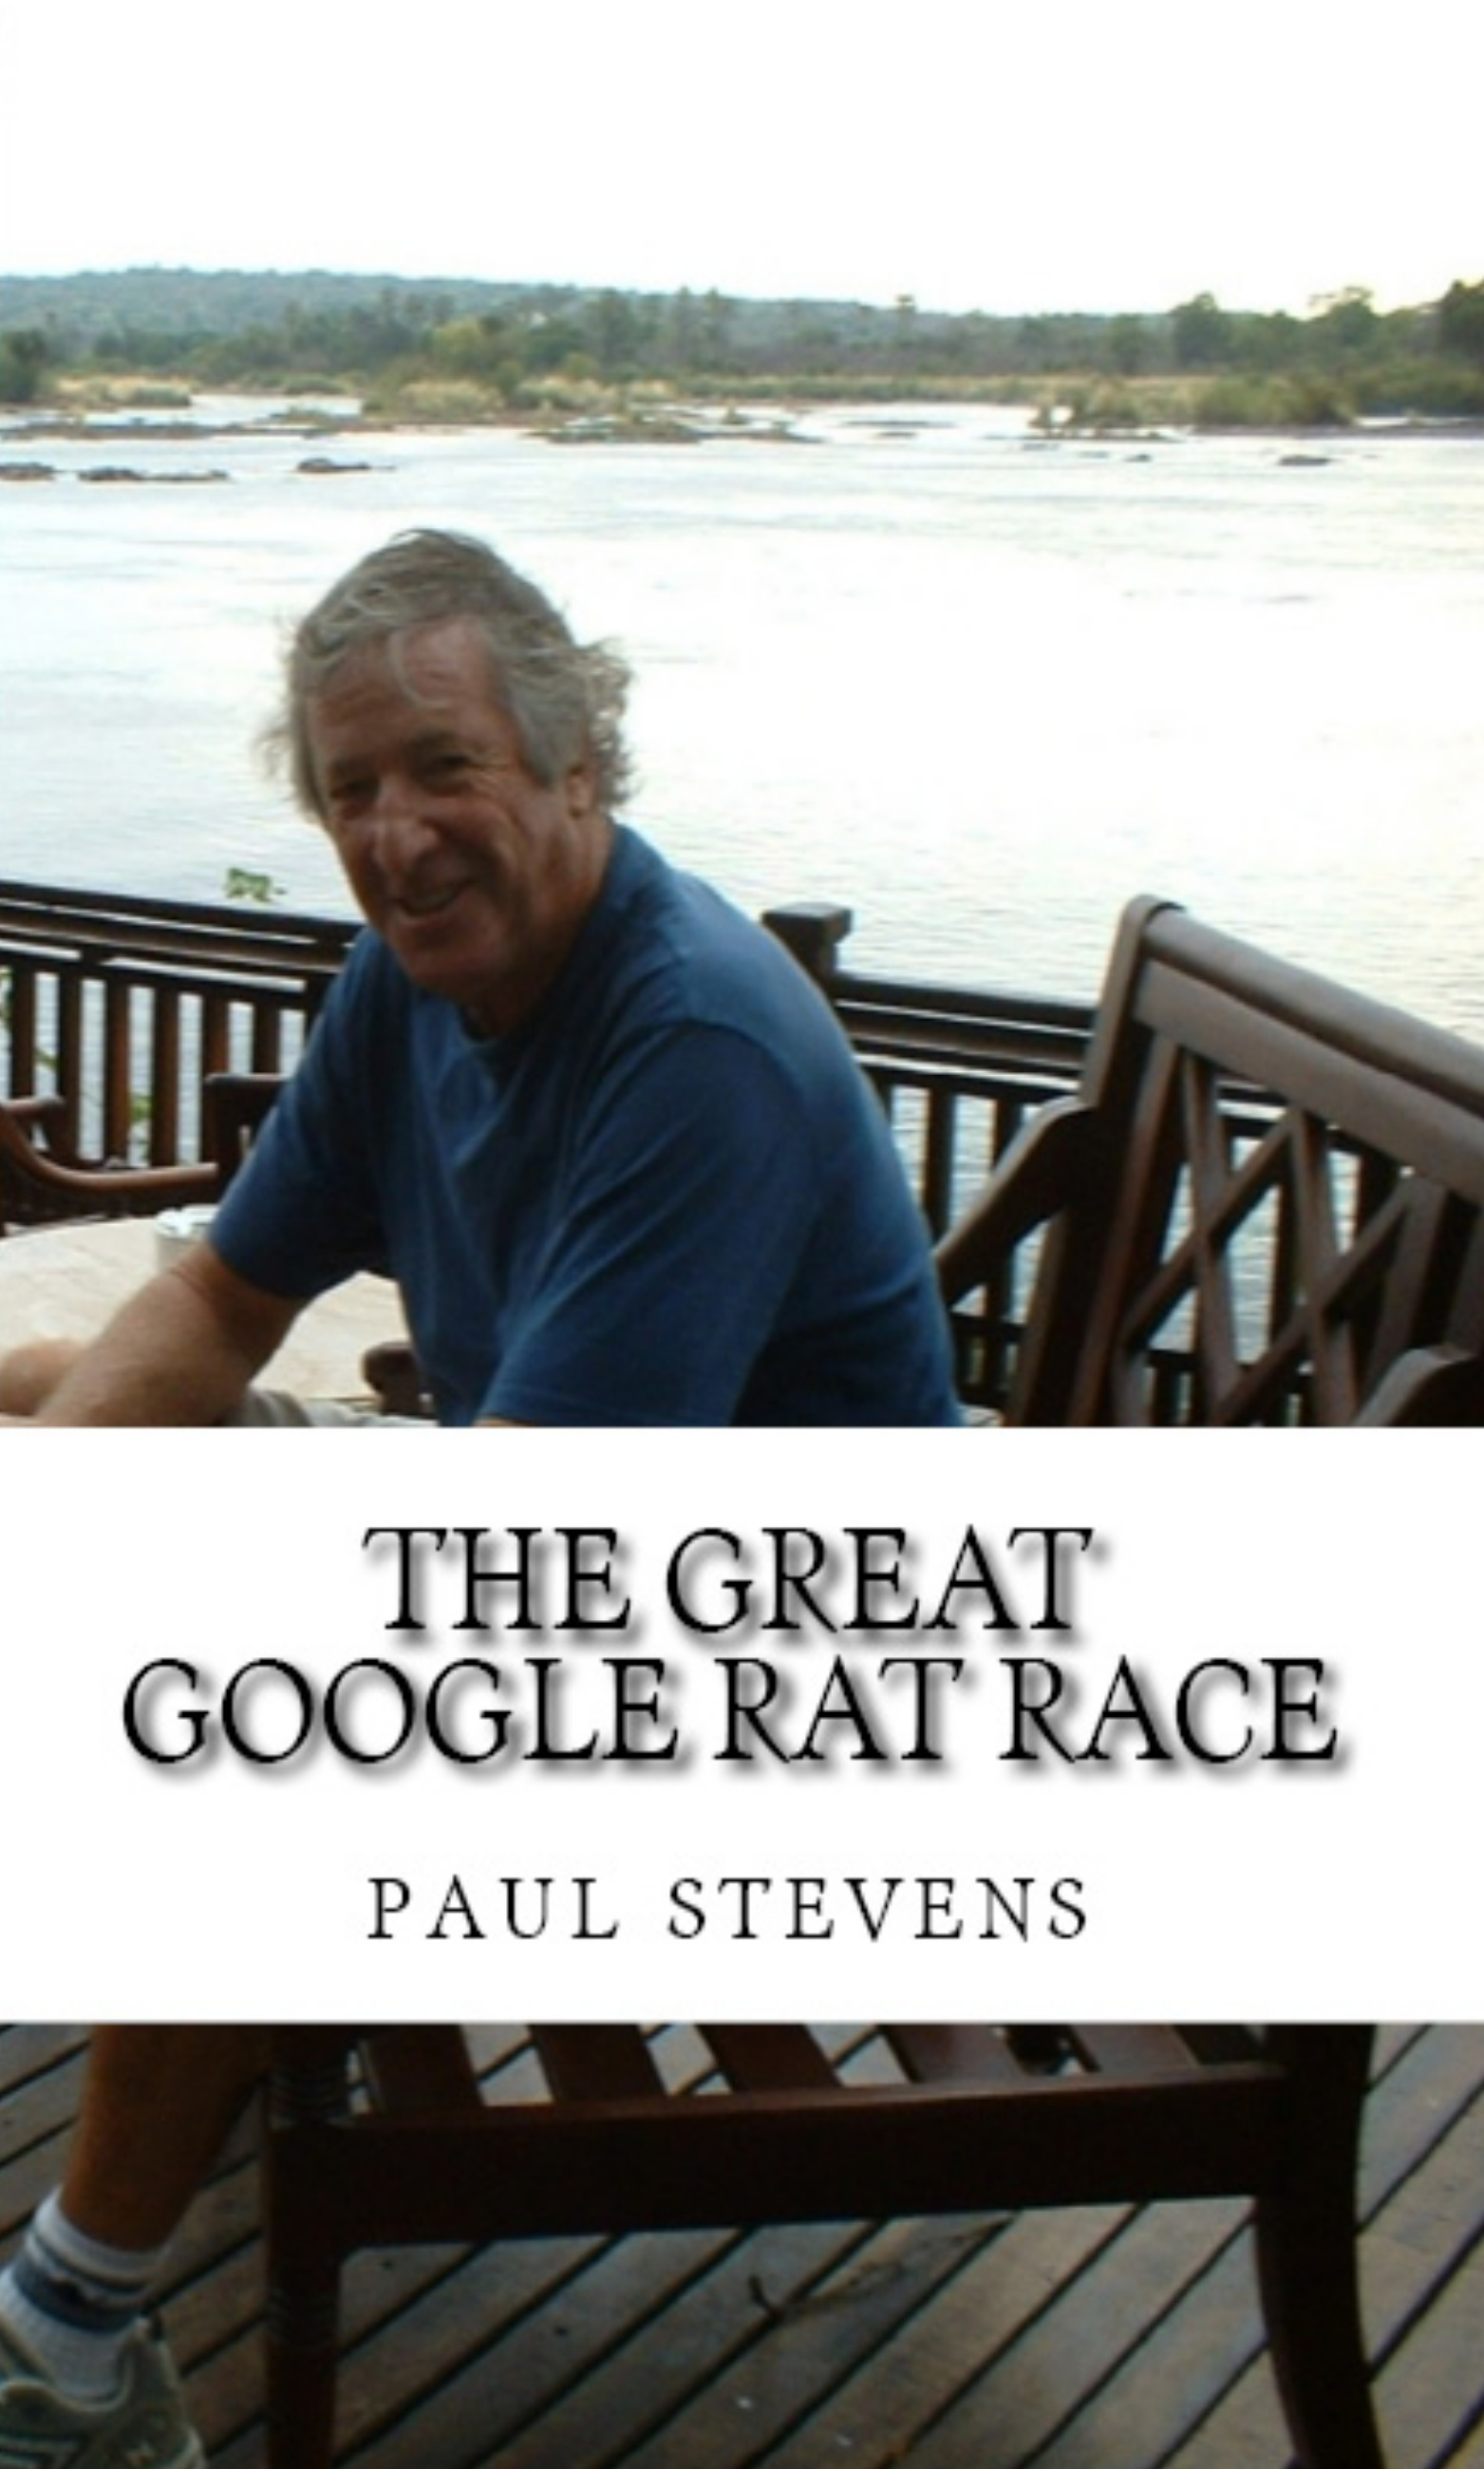 The Great Google Rat Race